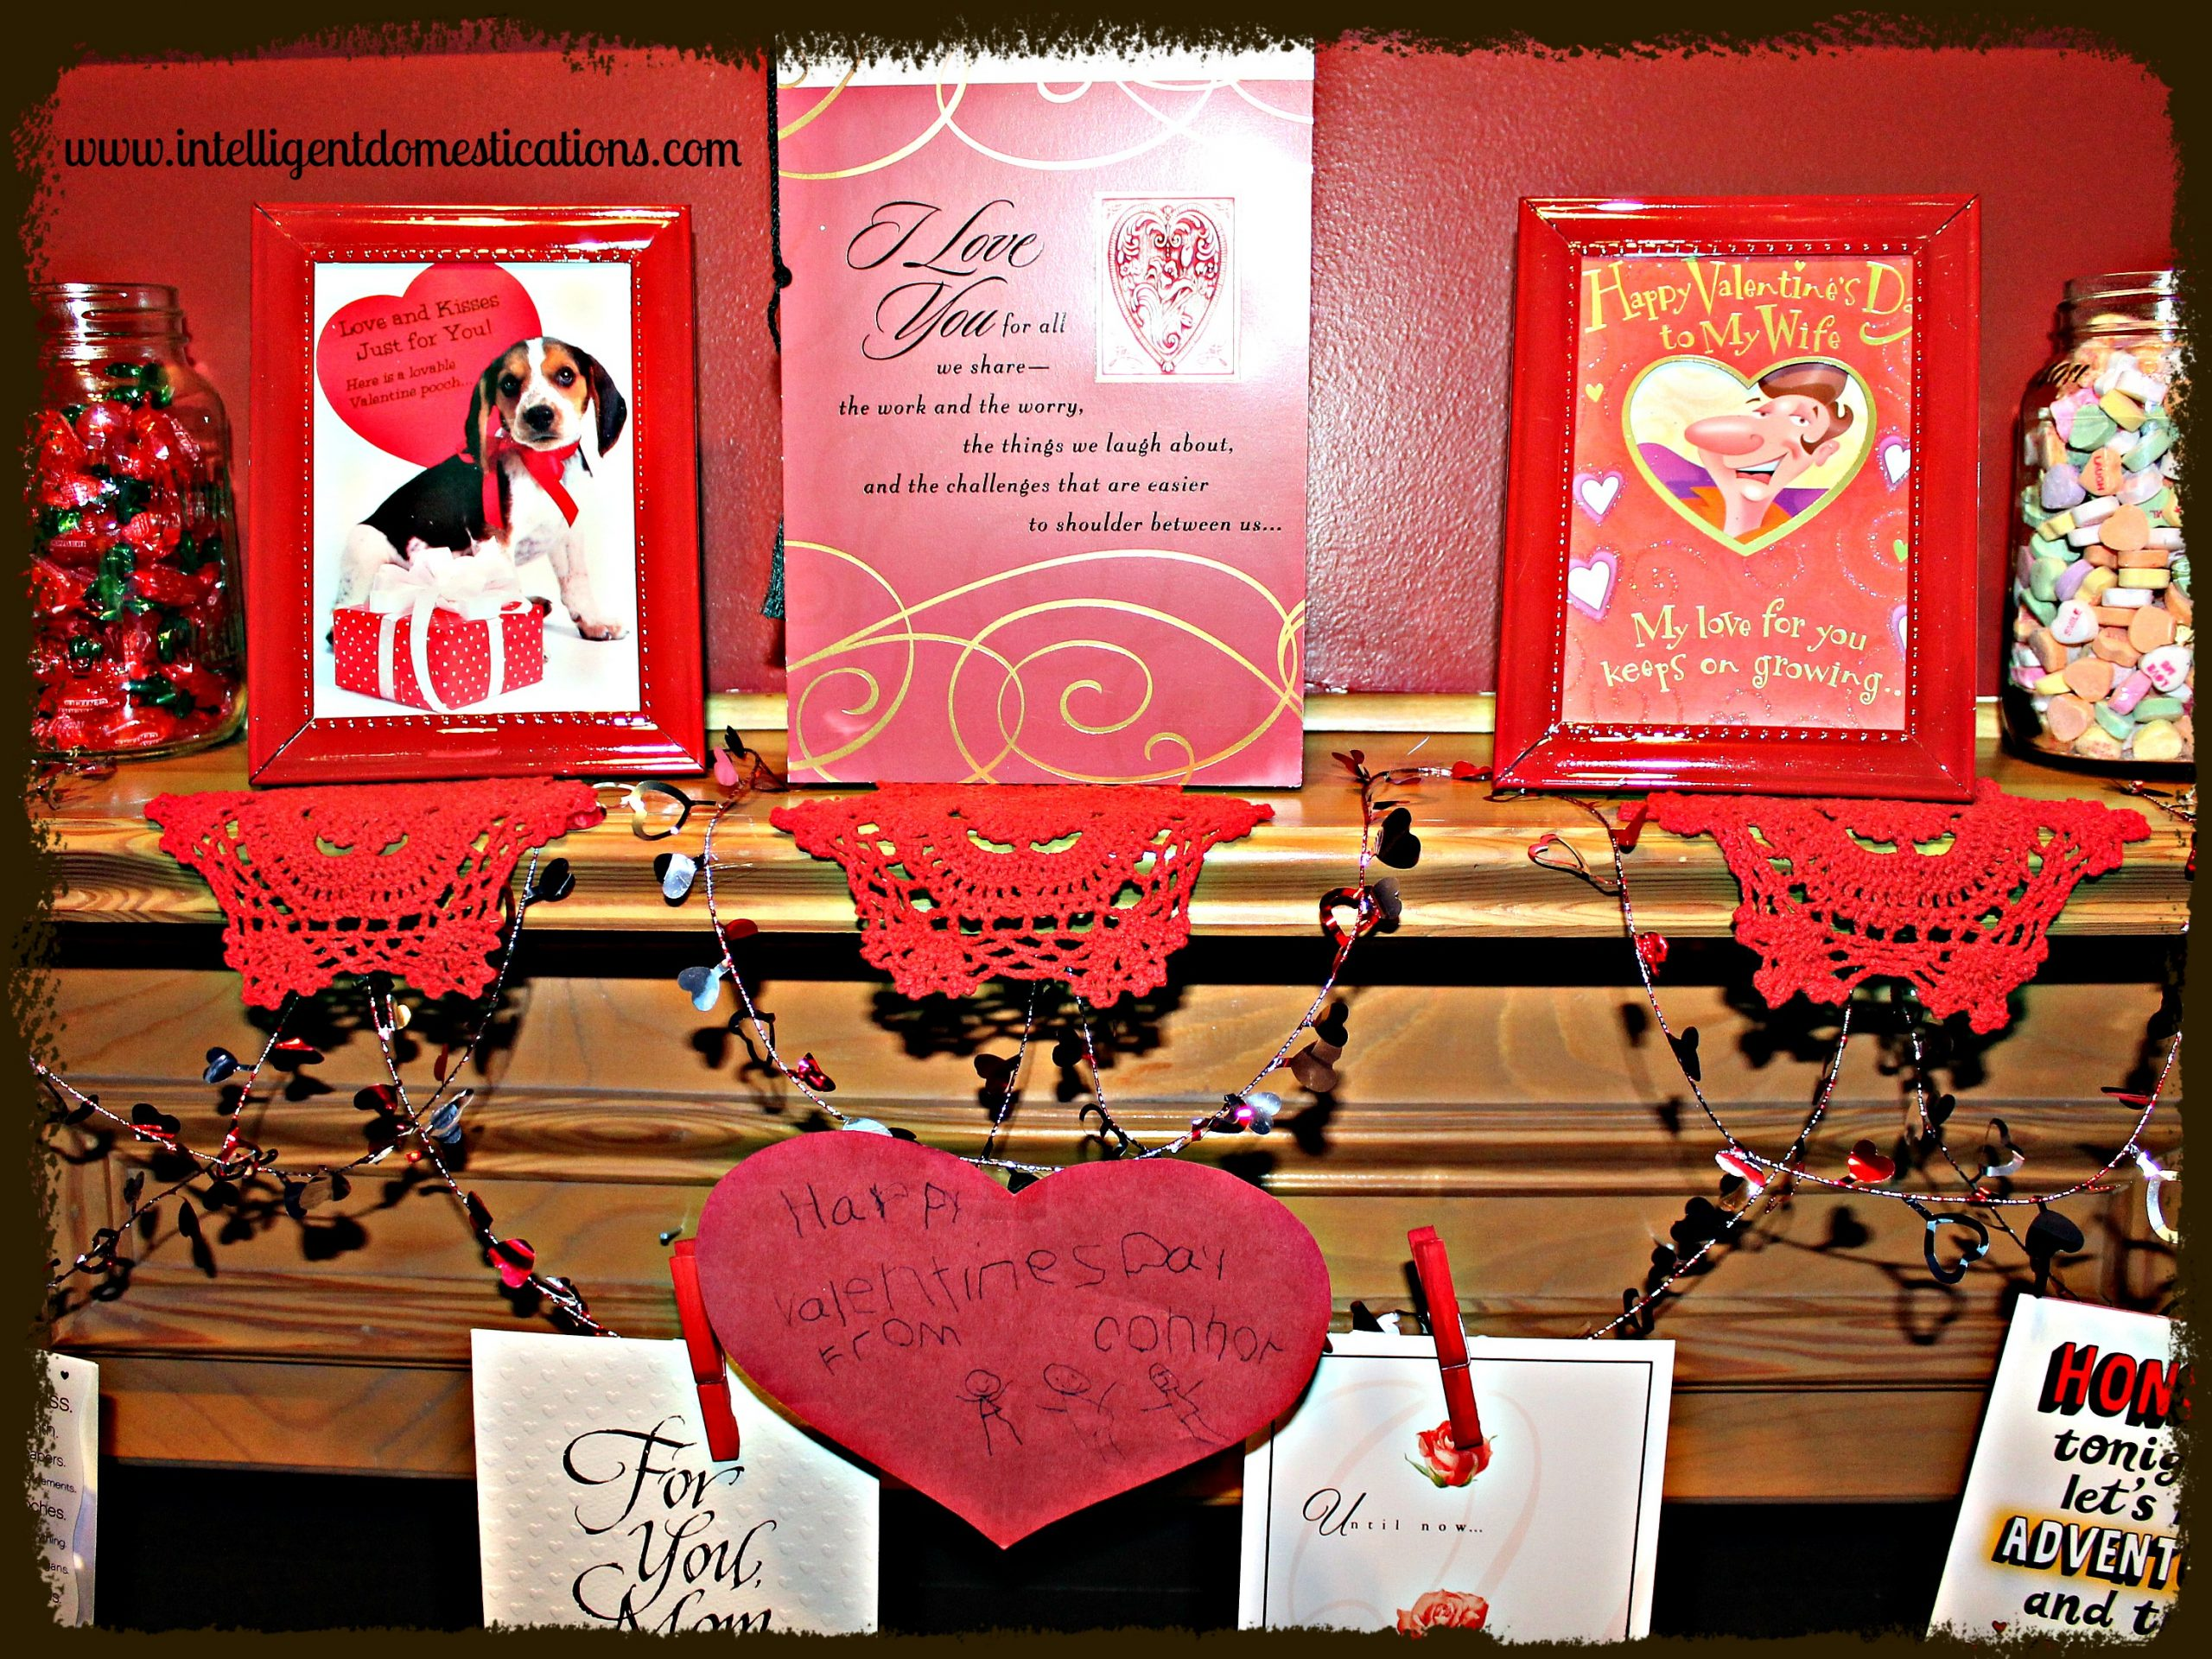 A Mantle decorated for Valentines by repurposing old Valentine cards for a walk down memory lane. Simple Valentines Mantle Decor Ideas